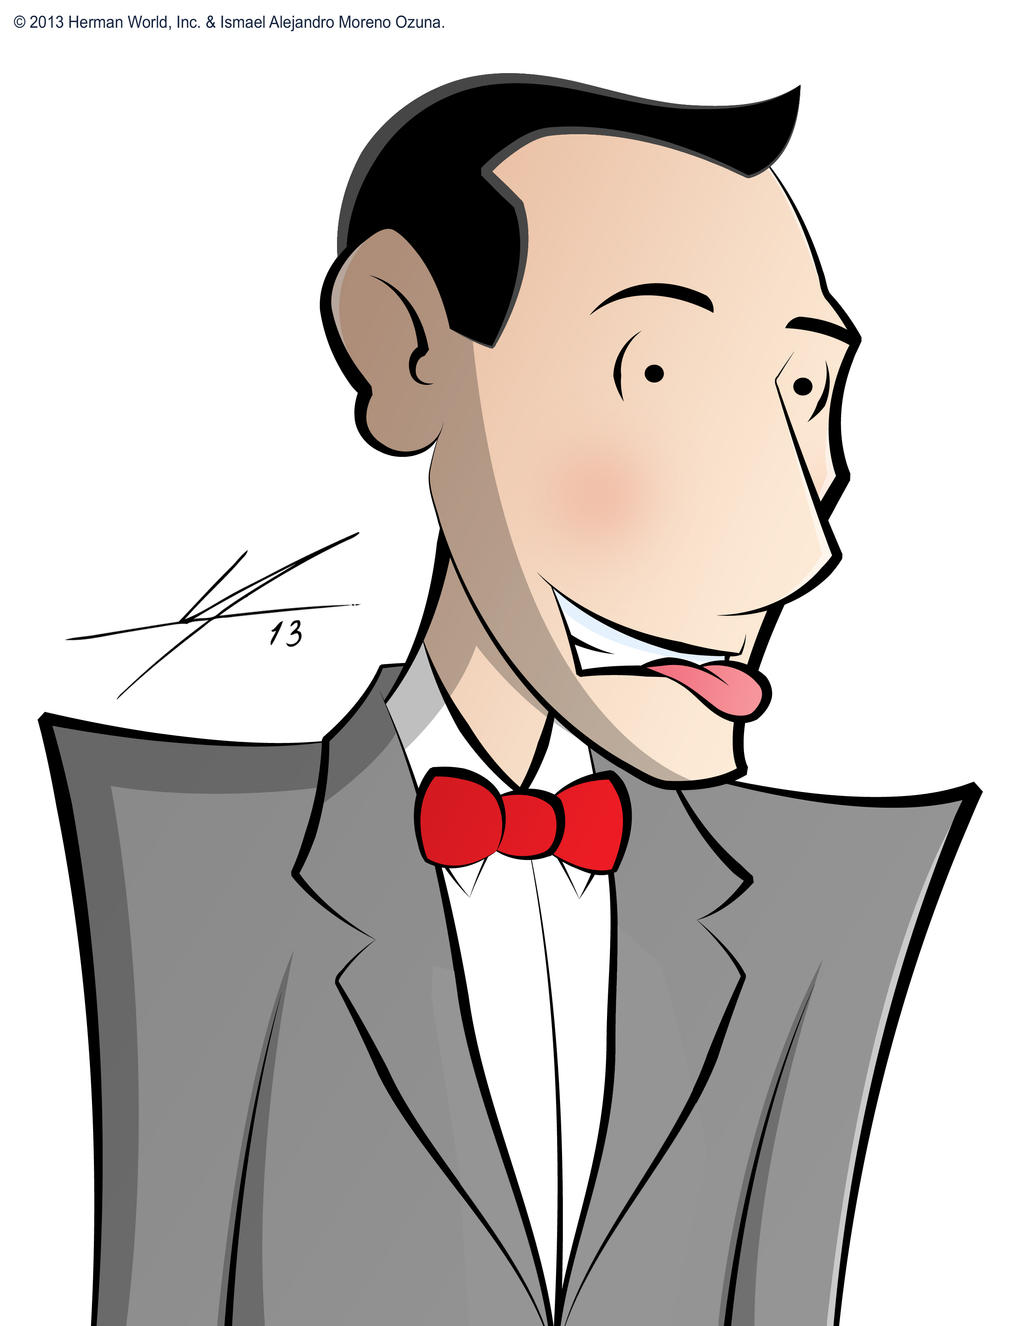 Pee-wee Herman by IAMO76